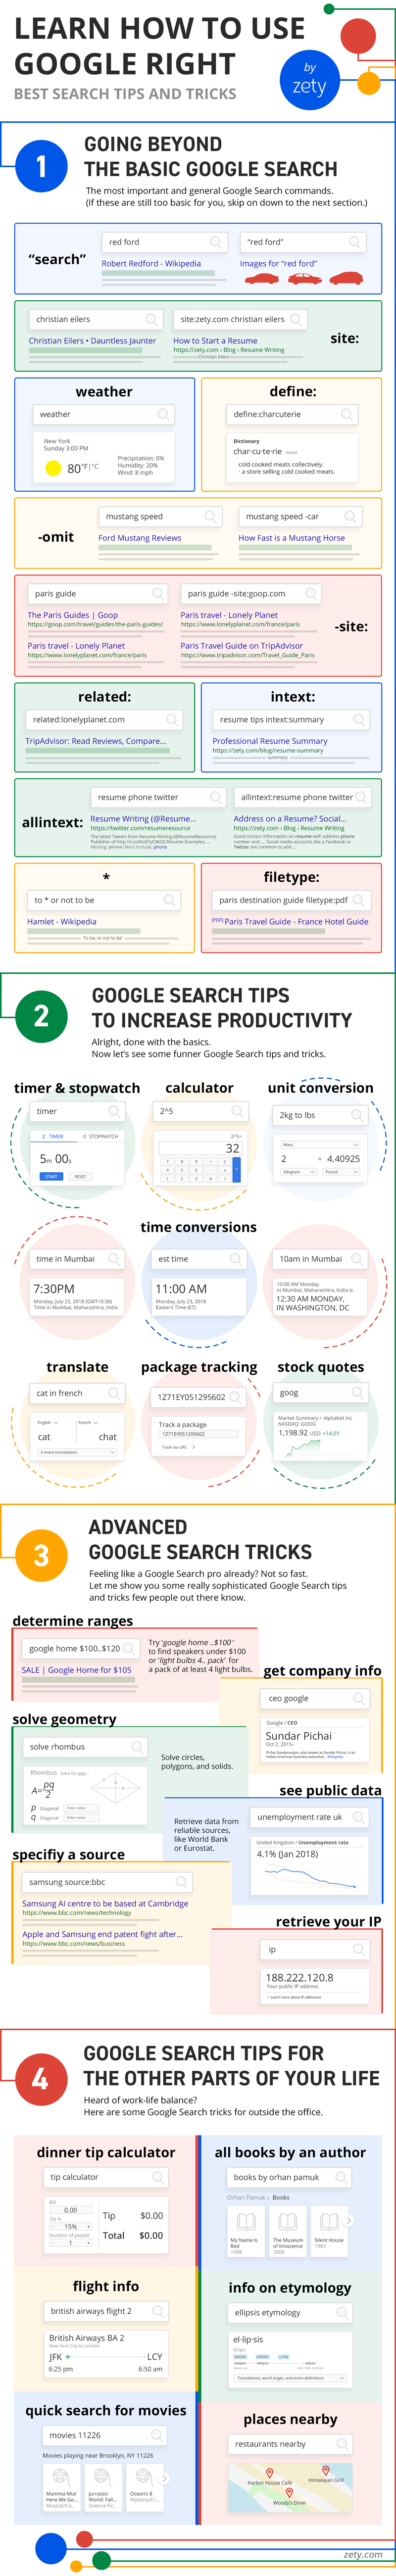 40+ Best Google Search Tips, Tricks & Hacks for 2019 [Infographic]